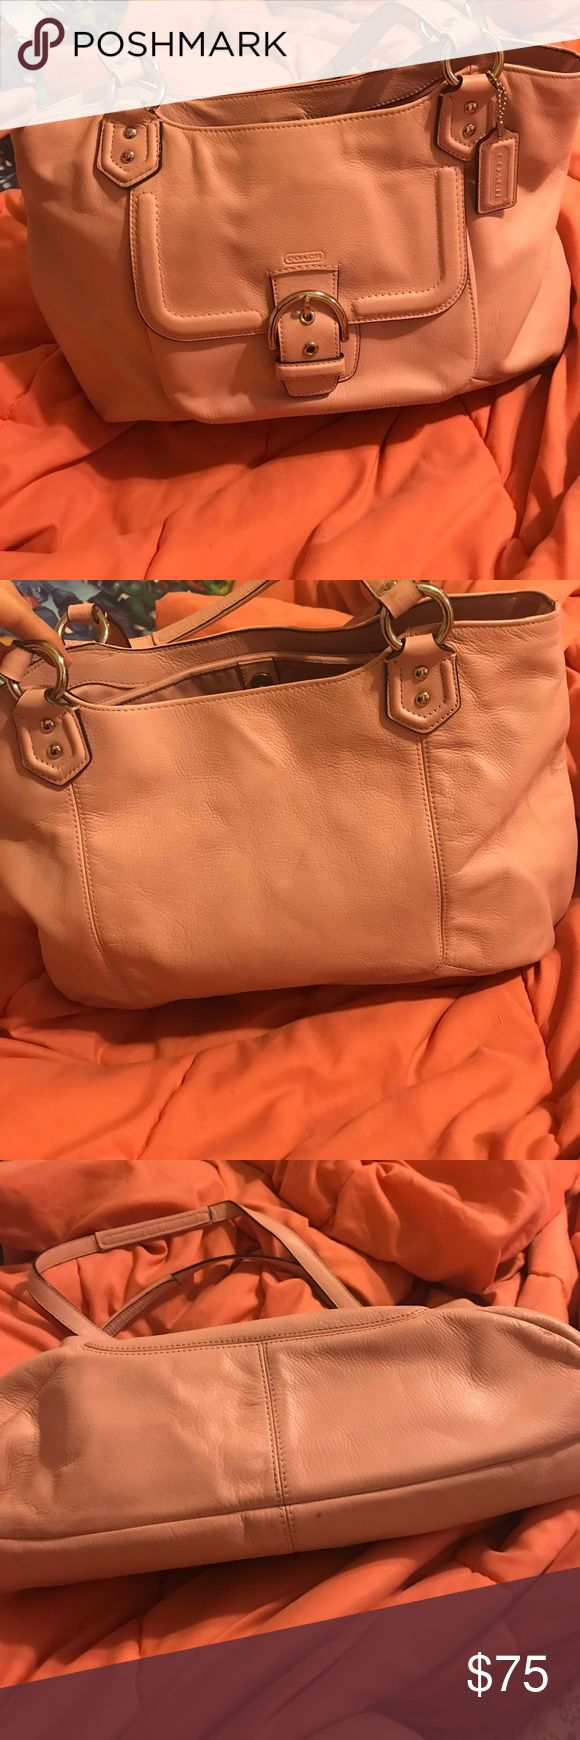 Peach coach pocketbook Has a few spots on inside but not bad. Coach Bags Shoulder Bags